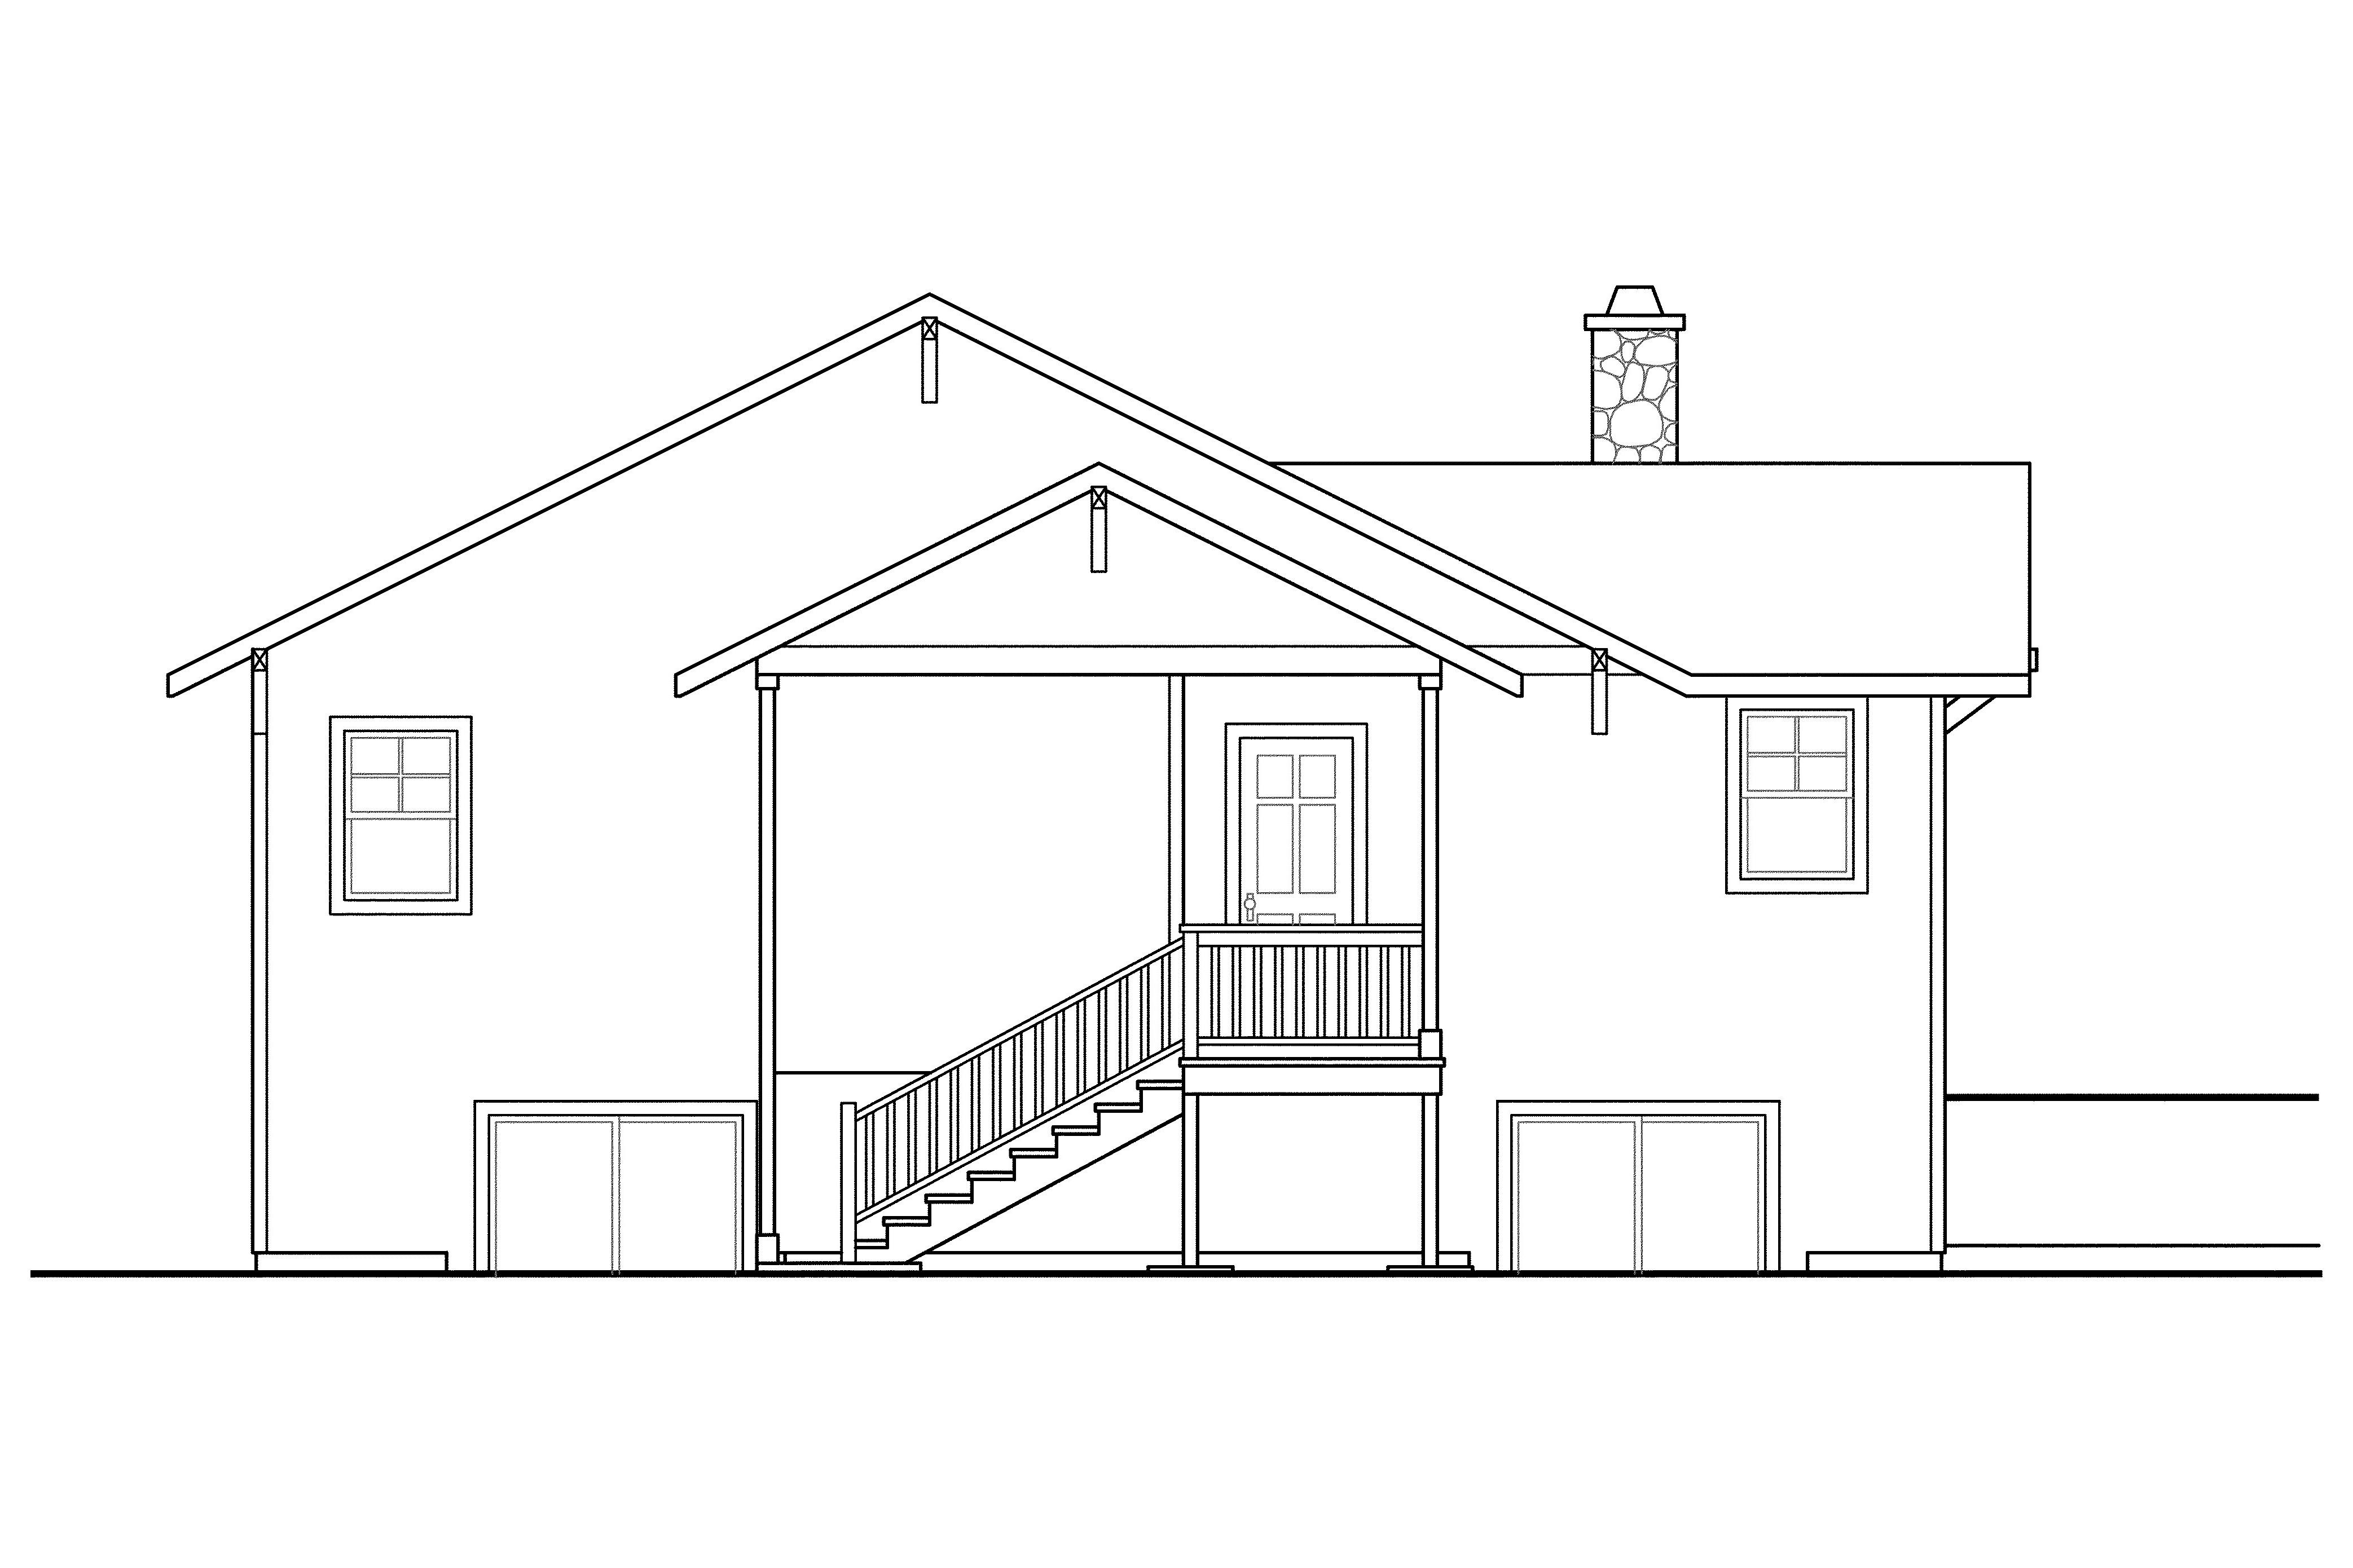 Unique sloped lot house plans house floor ideas for House plans for sloping lots in the rear